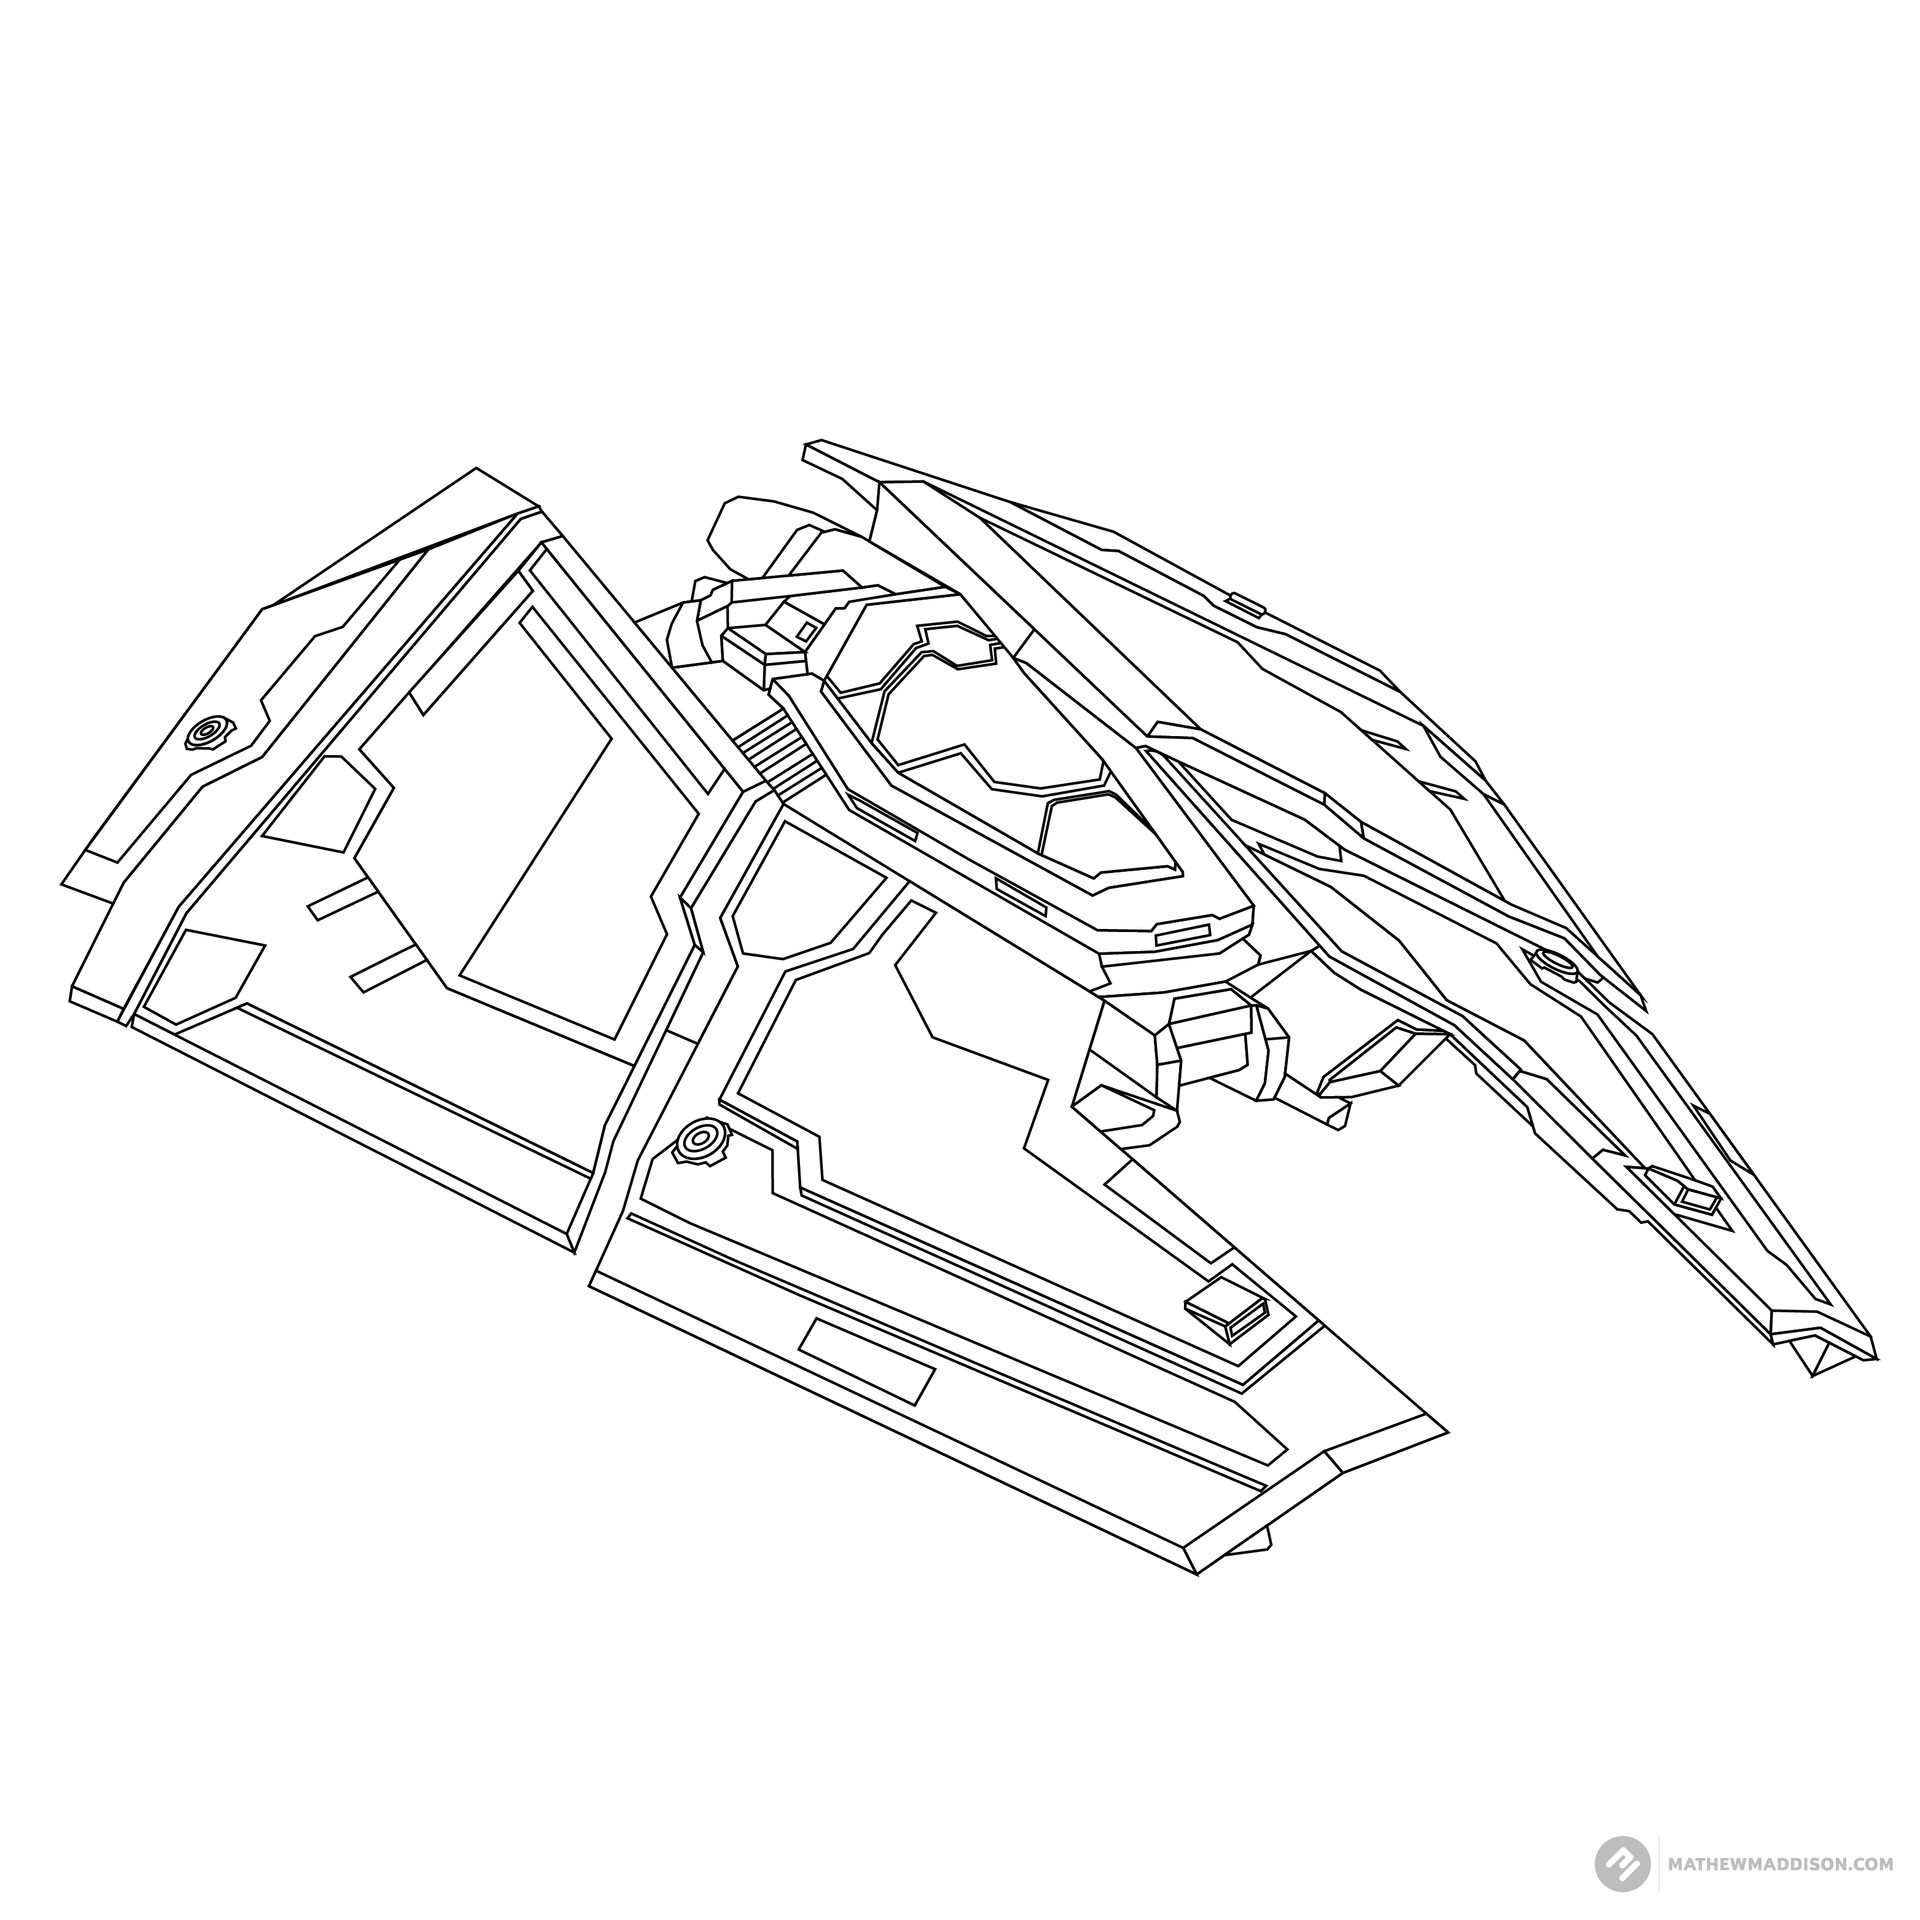 Mathew maddison elite ship no colours by mathew maddsion 01